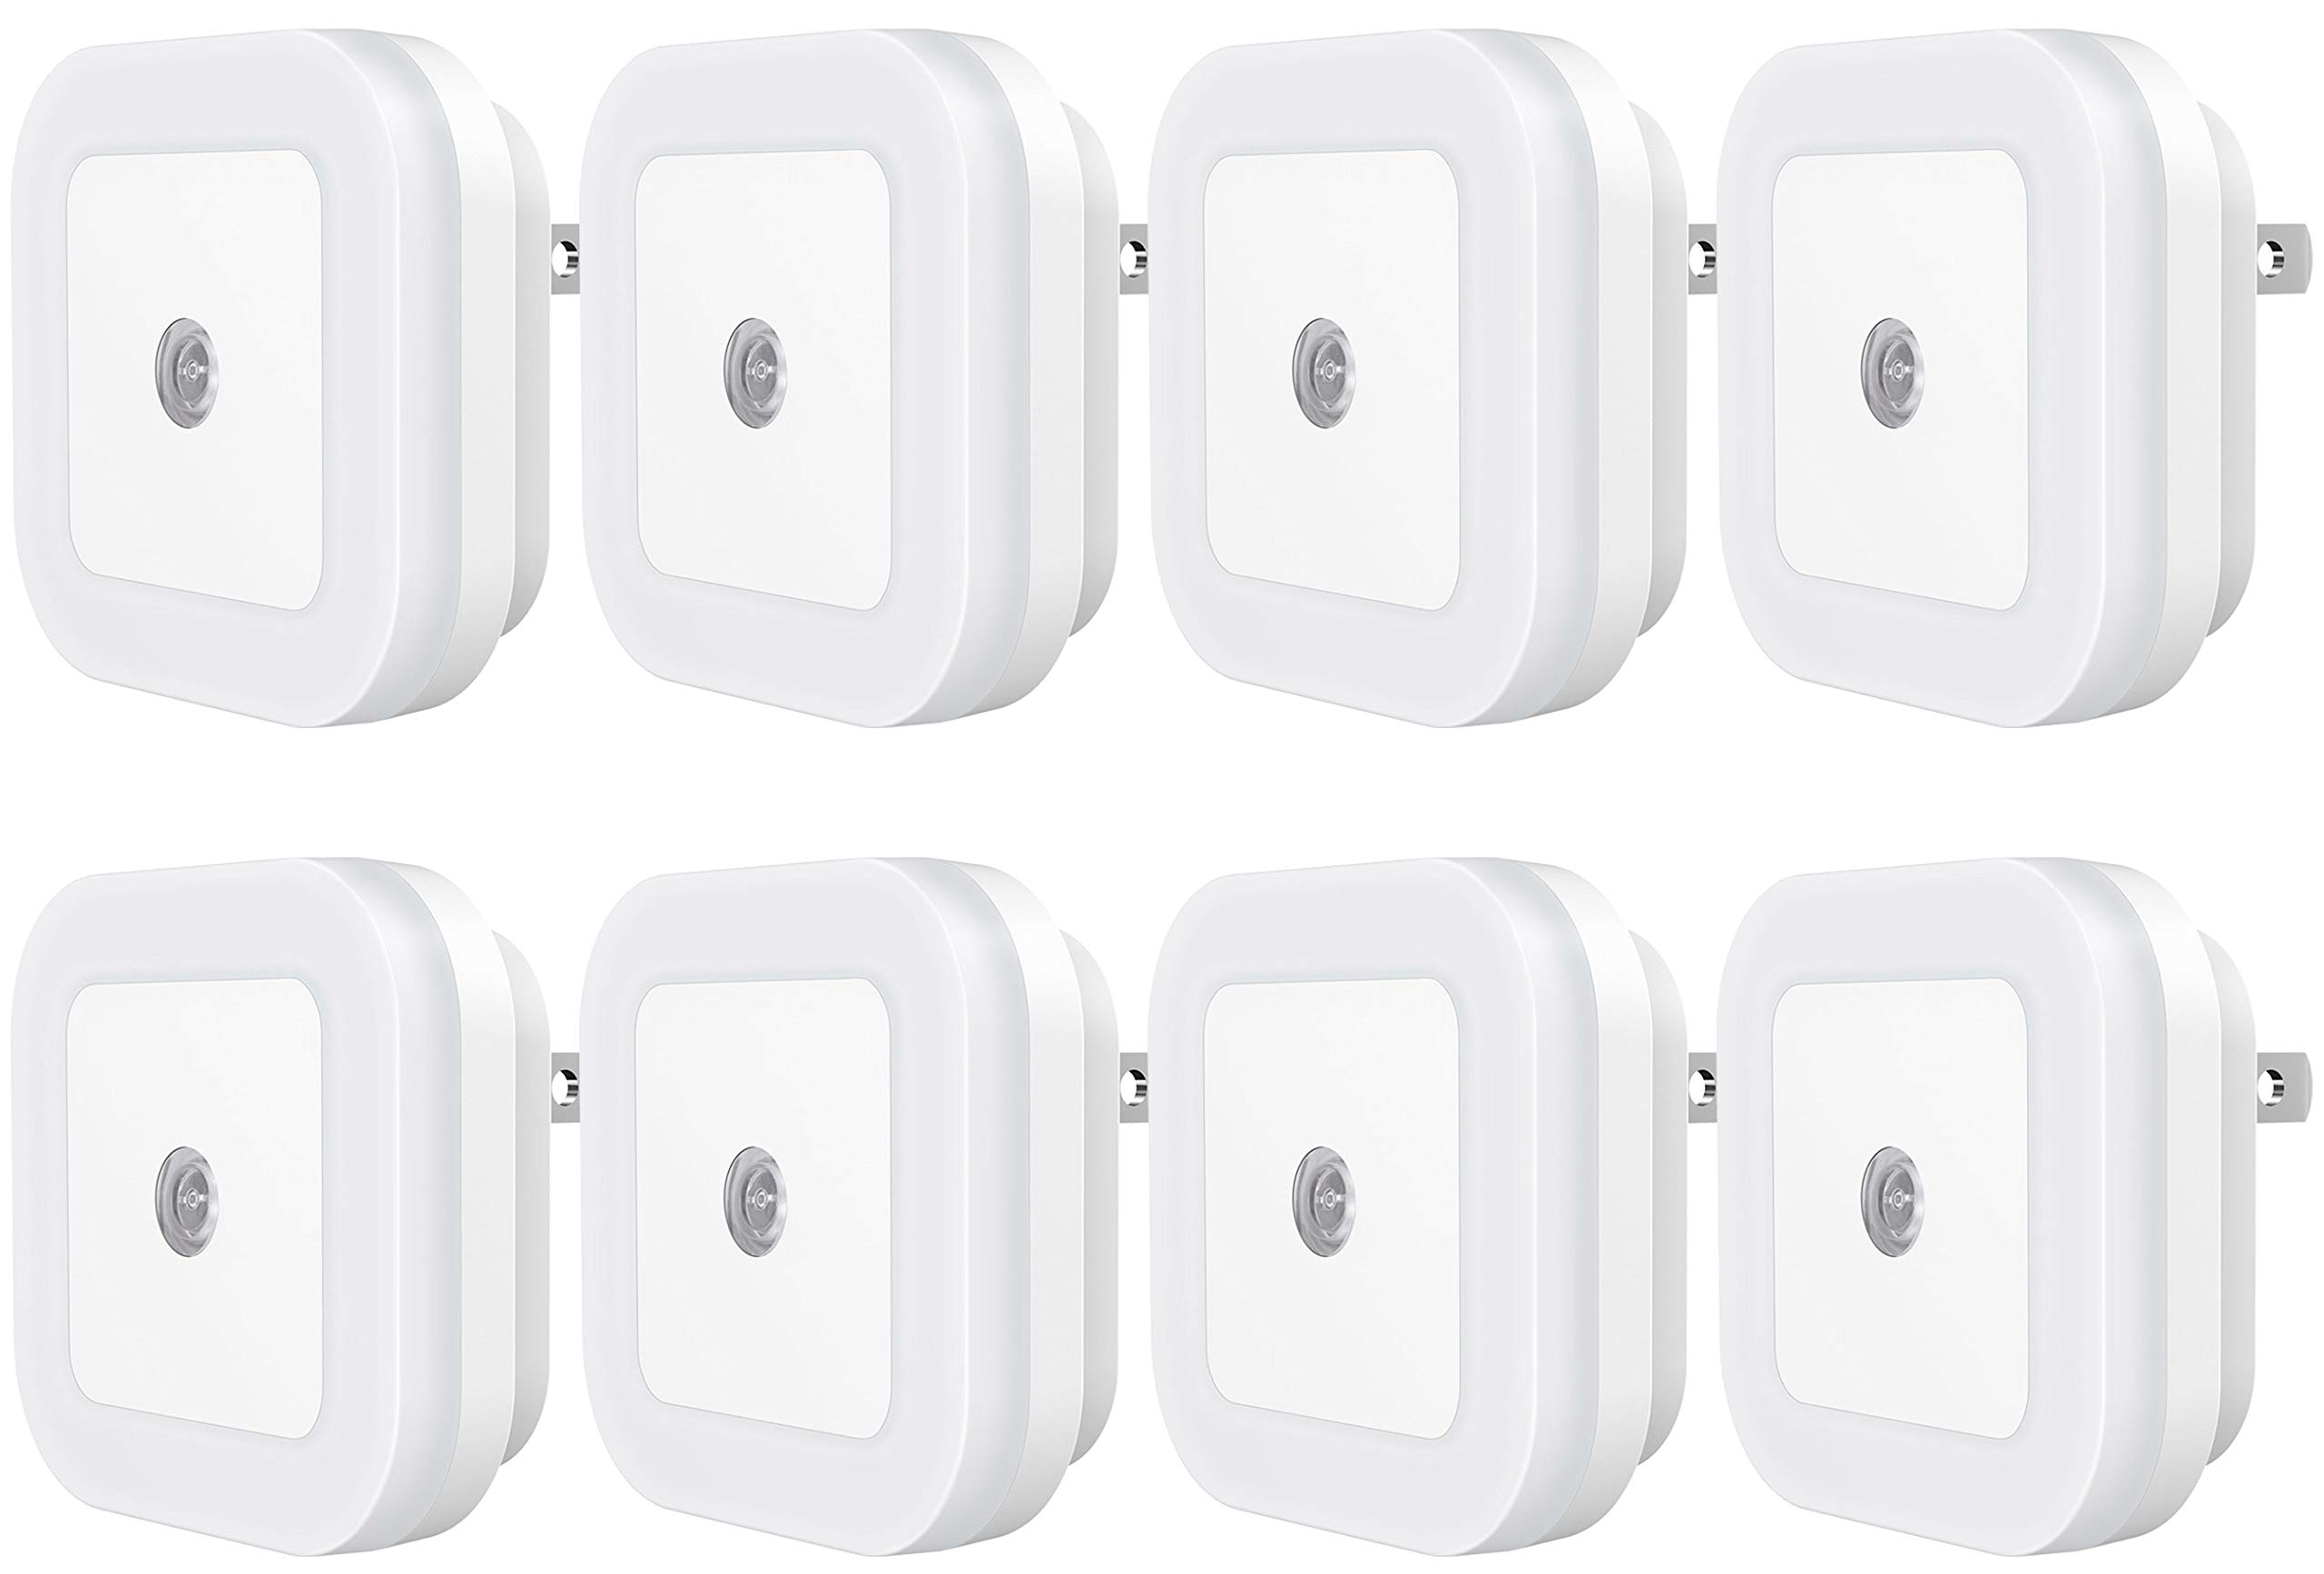 Sycees Plug-in LED Night Light Lamp with Dusk-to-Dawn Sensor for Bedroom, Bathroom, Kitchen, Hallway, Stairs, Daylight White, 8-Pack